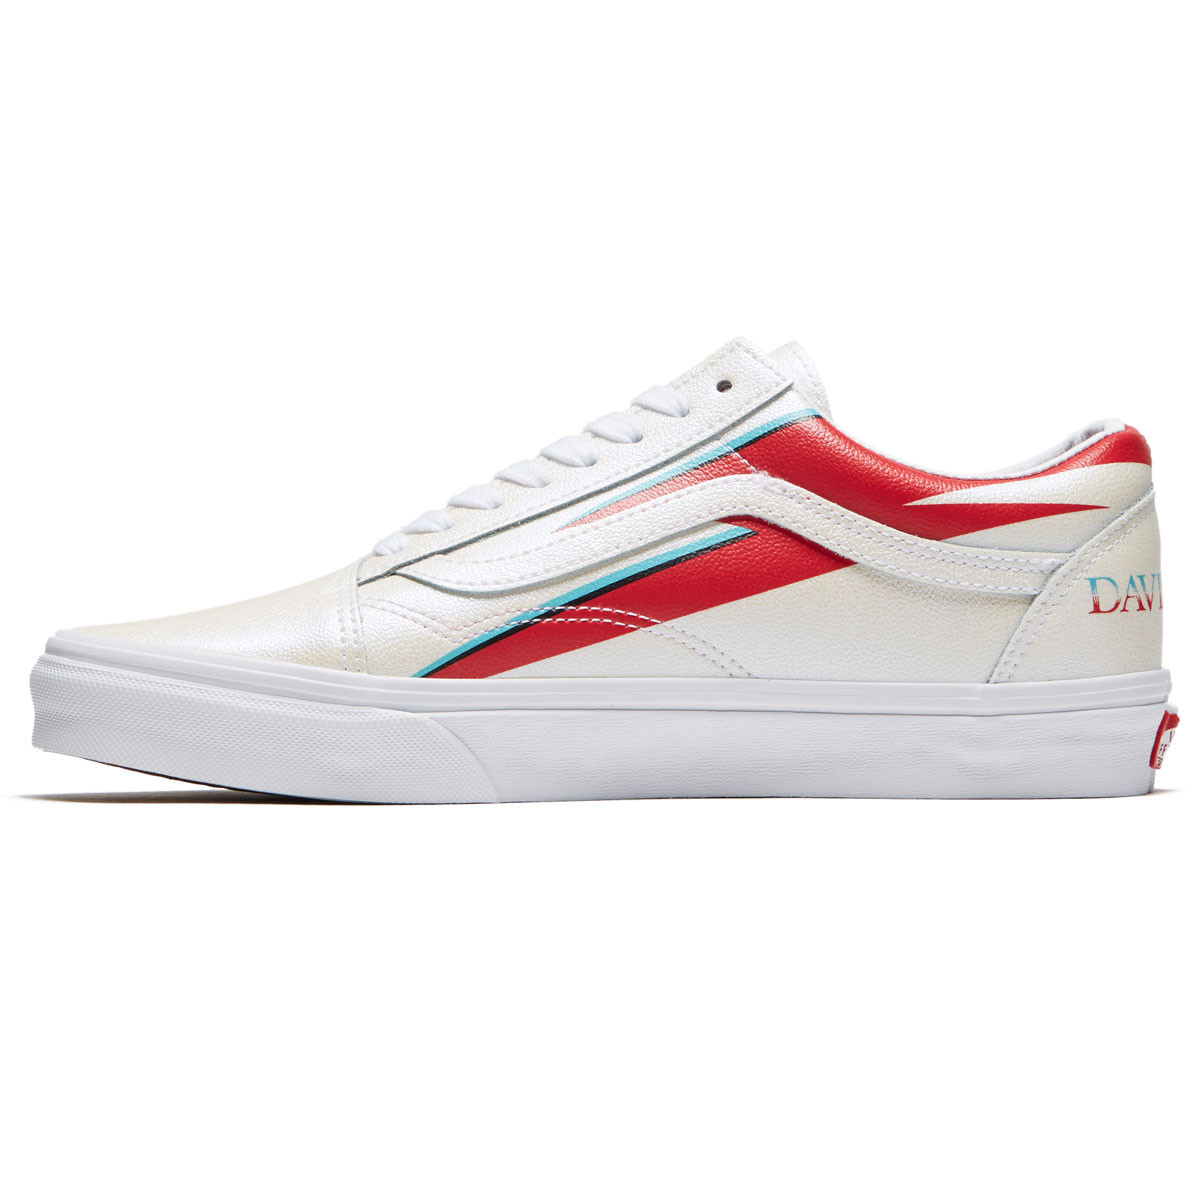 Vans x David Bowie Old Skool Shoes